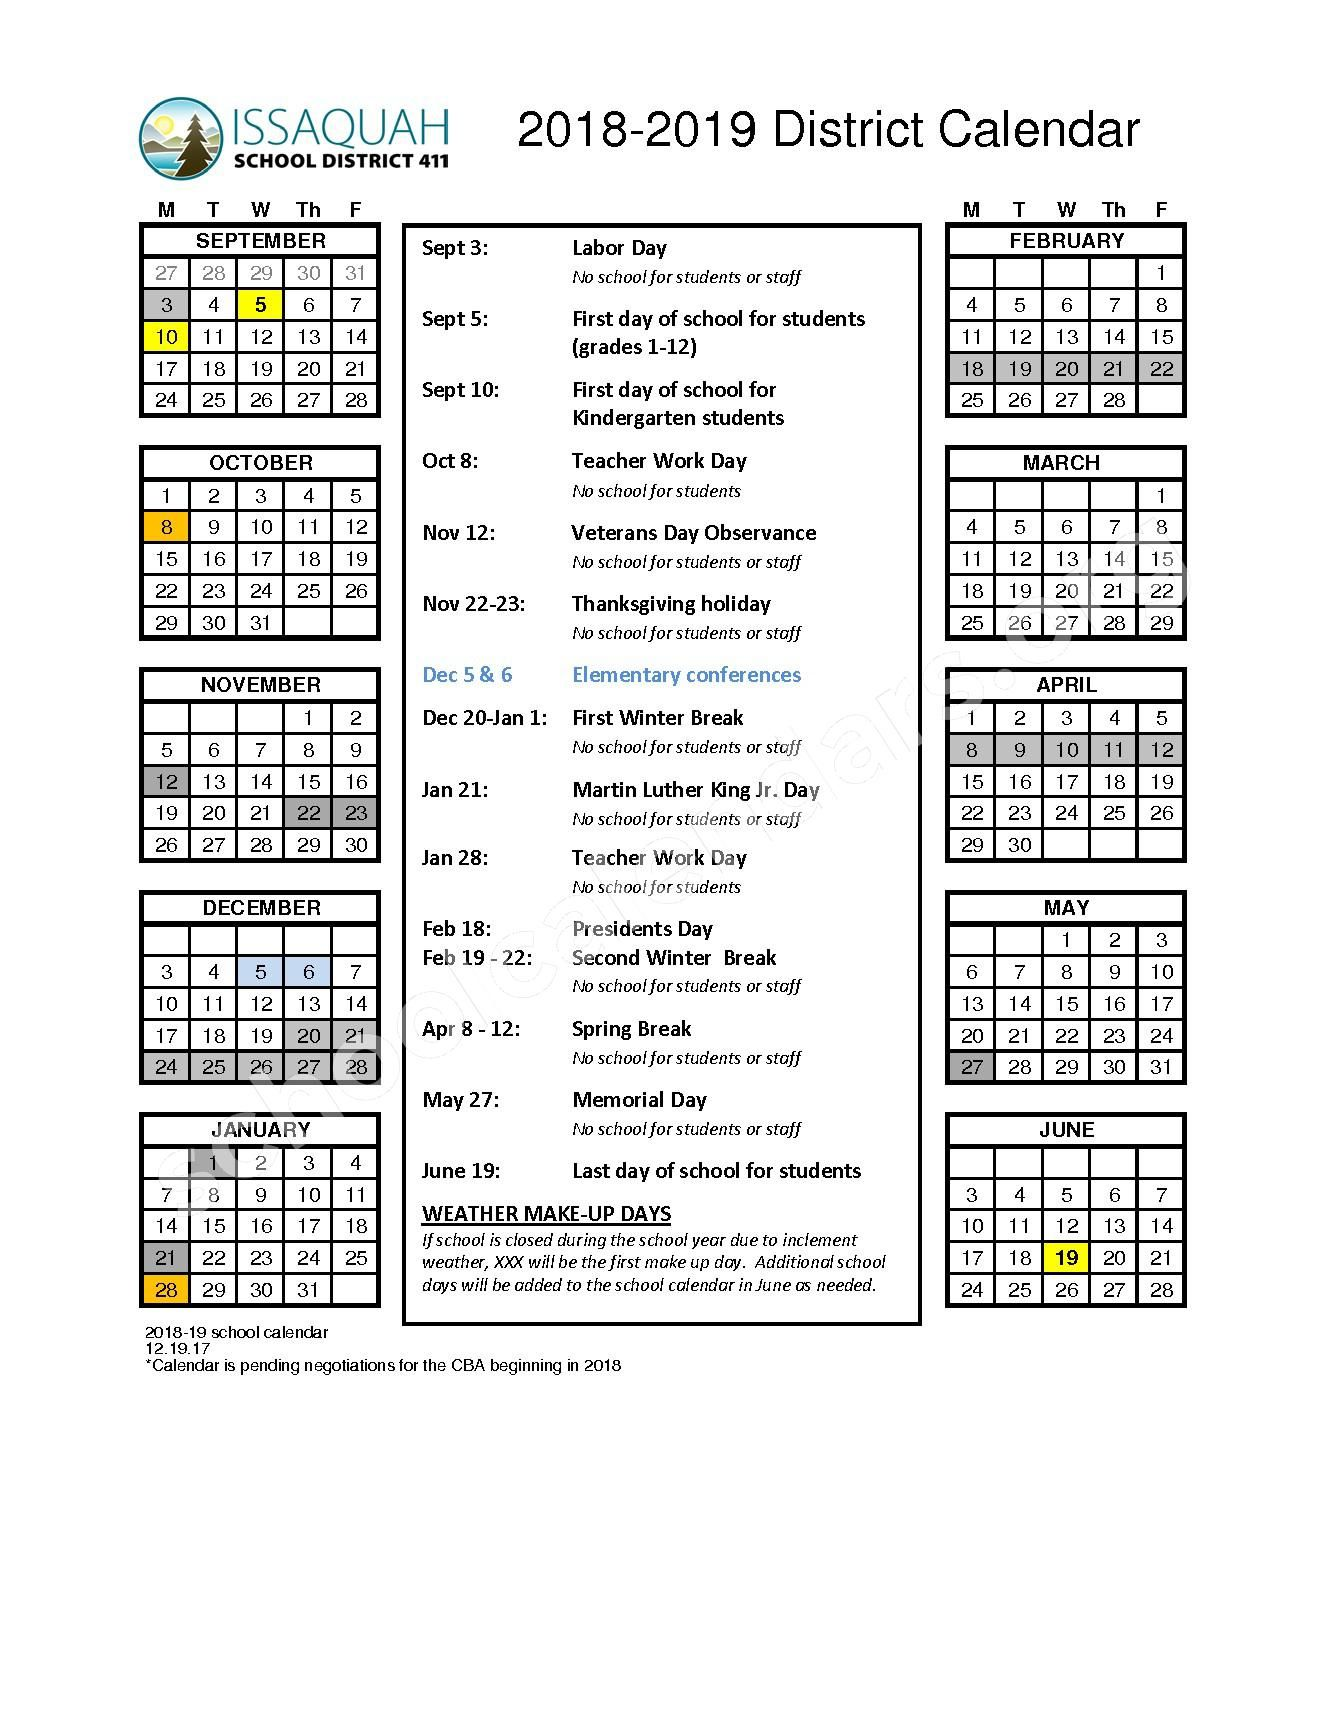 Issaquah School District Calendar Free Images Download https://